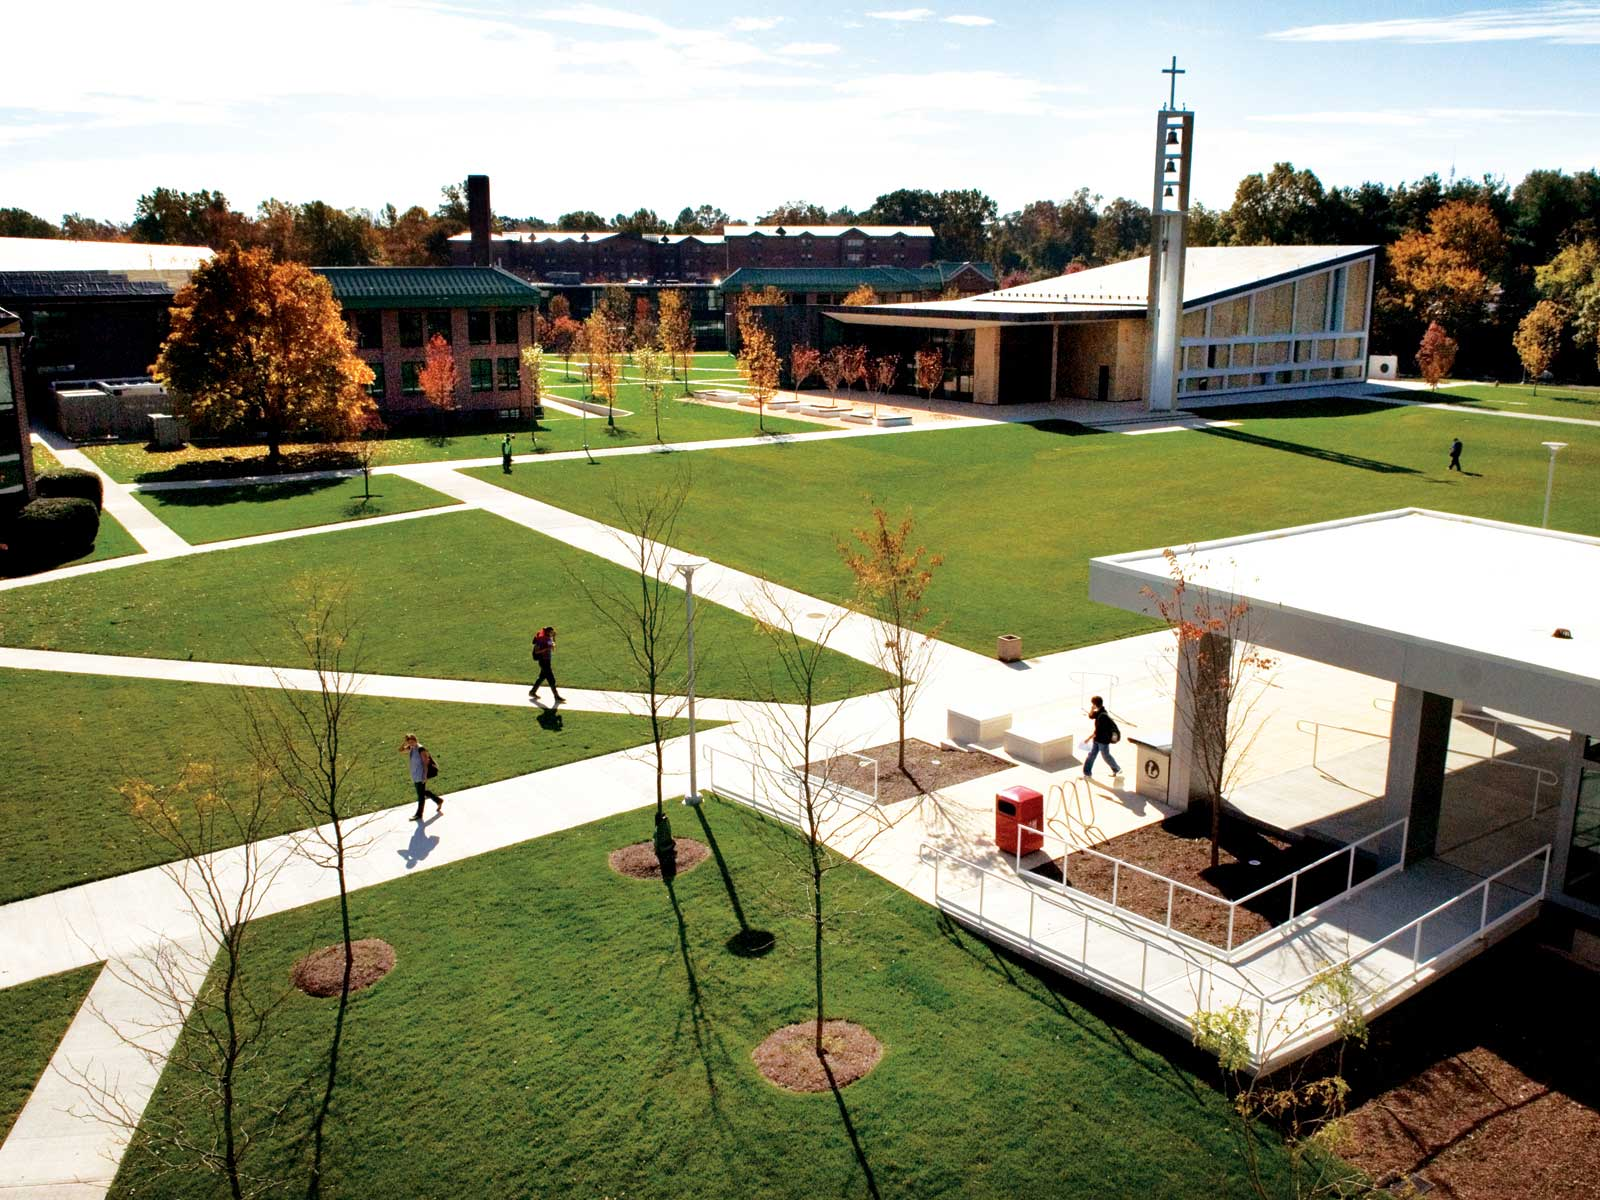 The Sacred Heart University John F. Welch College of Business was recently named one of the top undergraduate business schools by Bloomberg Businessweek.